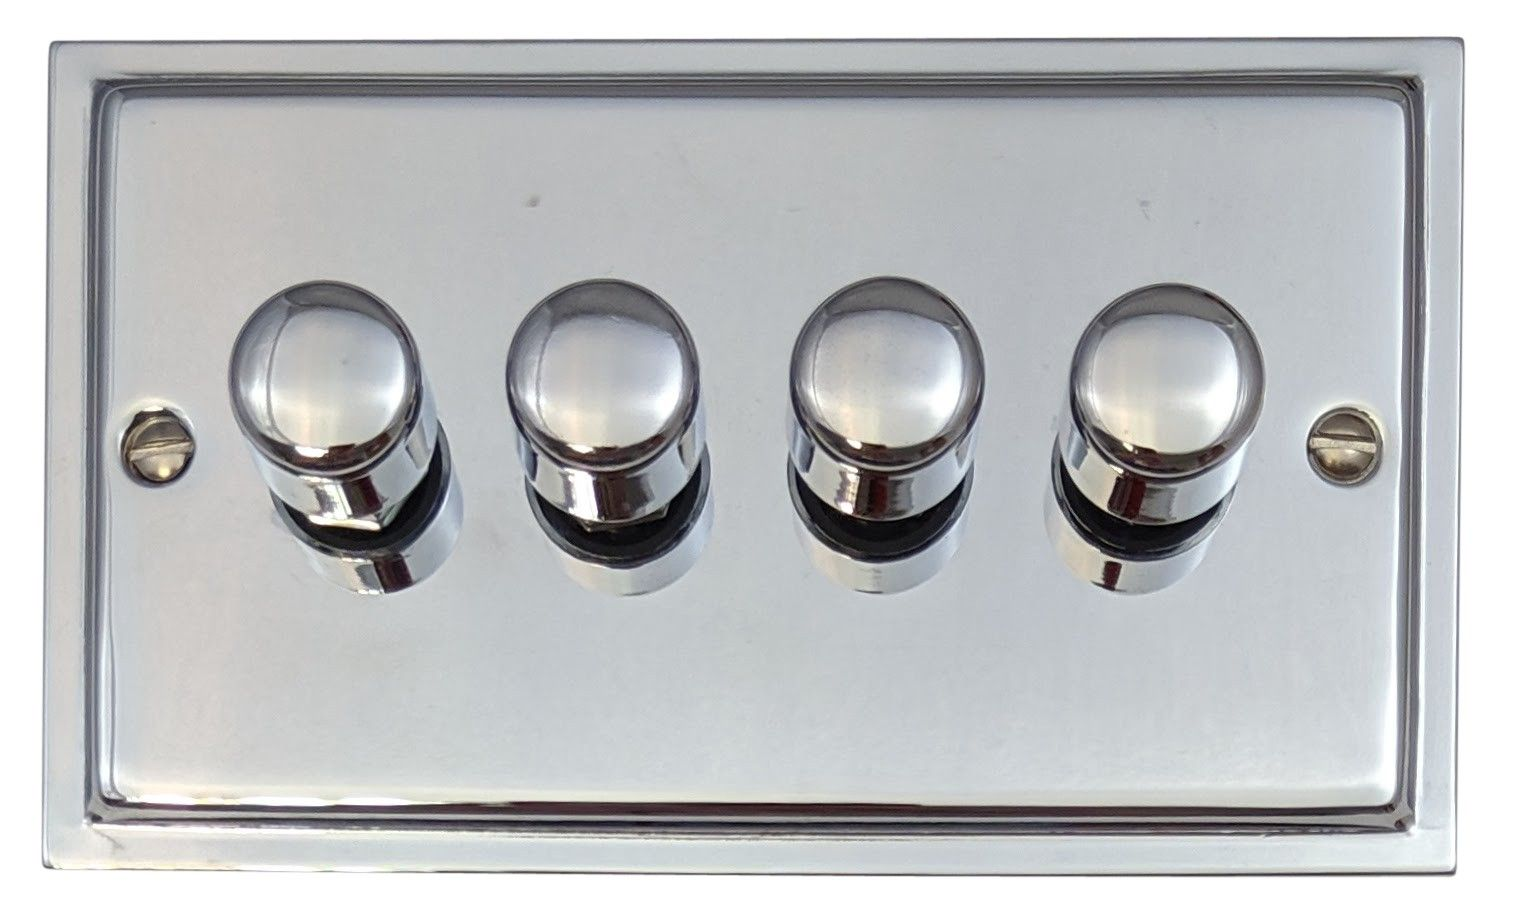 G&H HC14 Highline Plate Polished Chrome 4 Gang 1 or 2 Way 40-400W Dimmer Switch